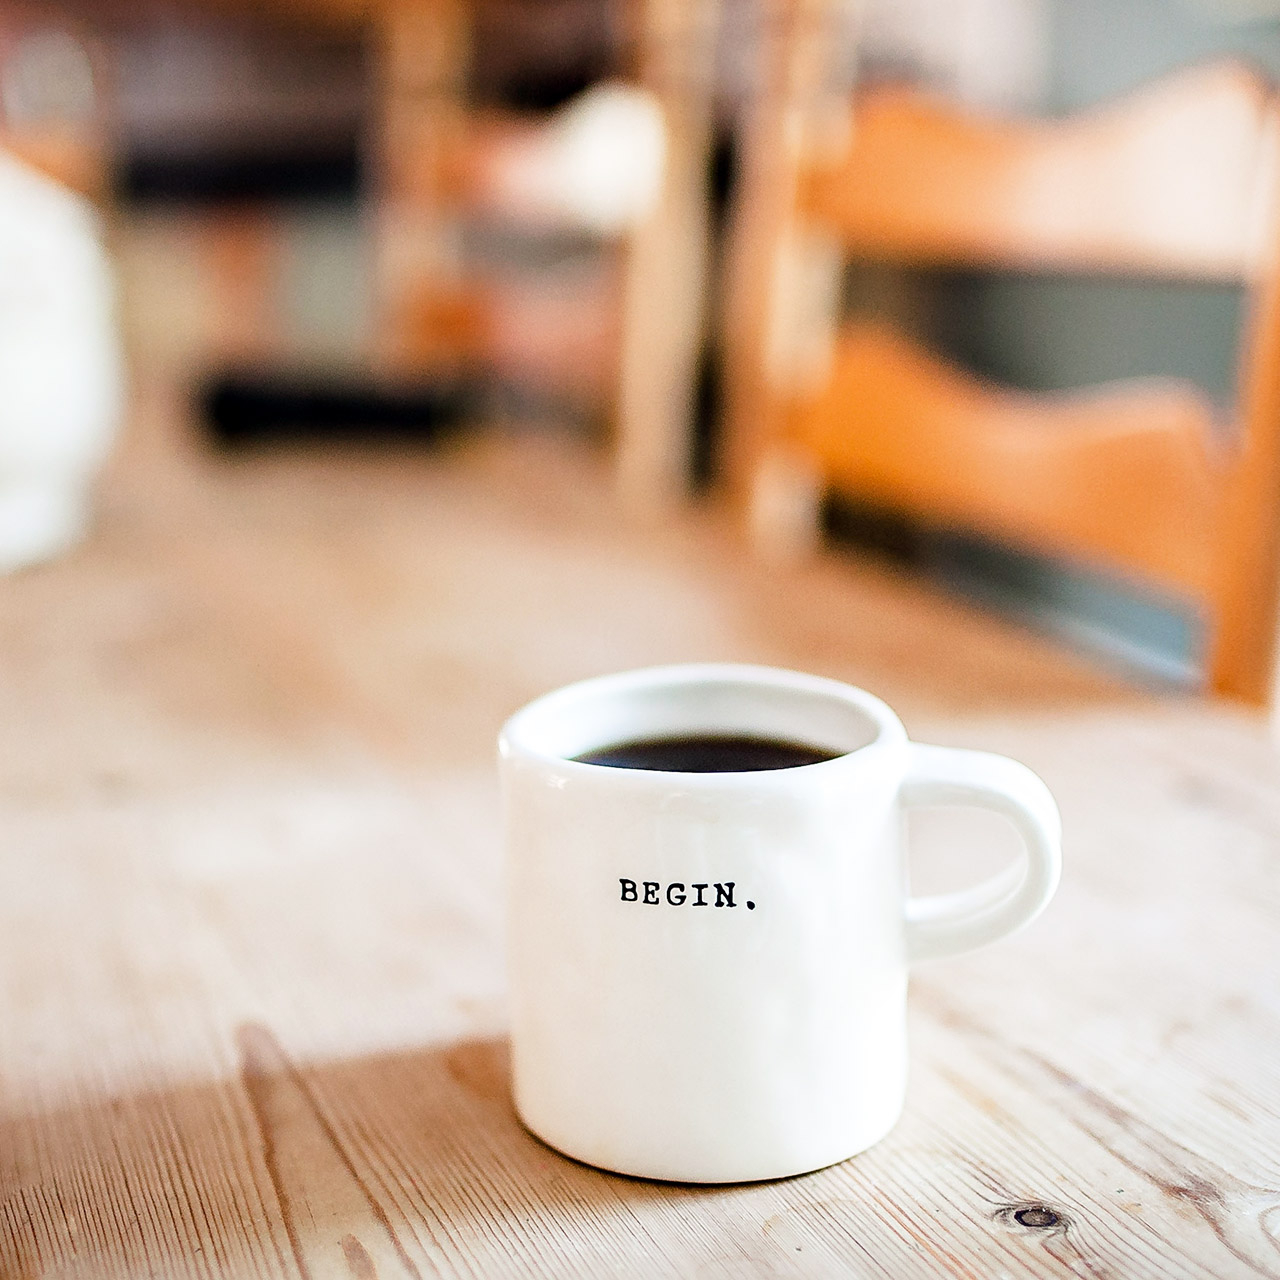 12 Things to declutter today - including mugs!